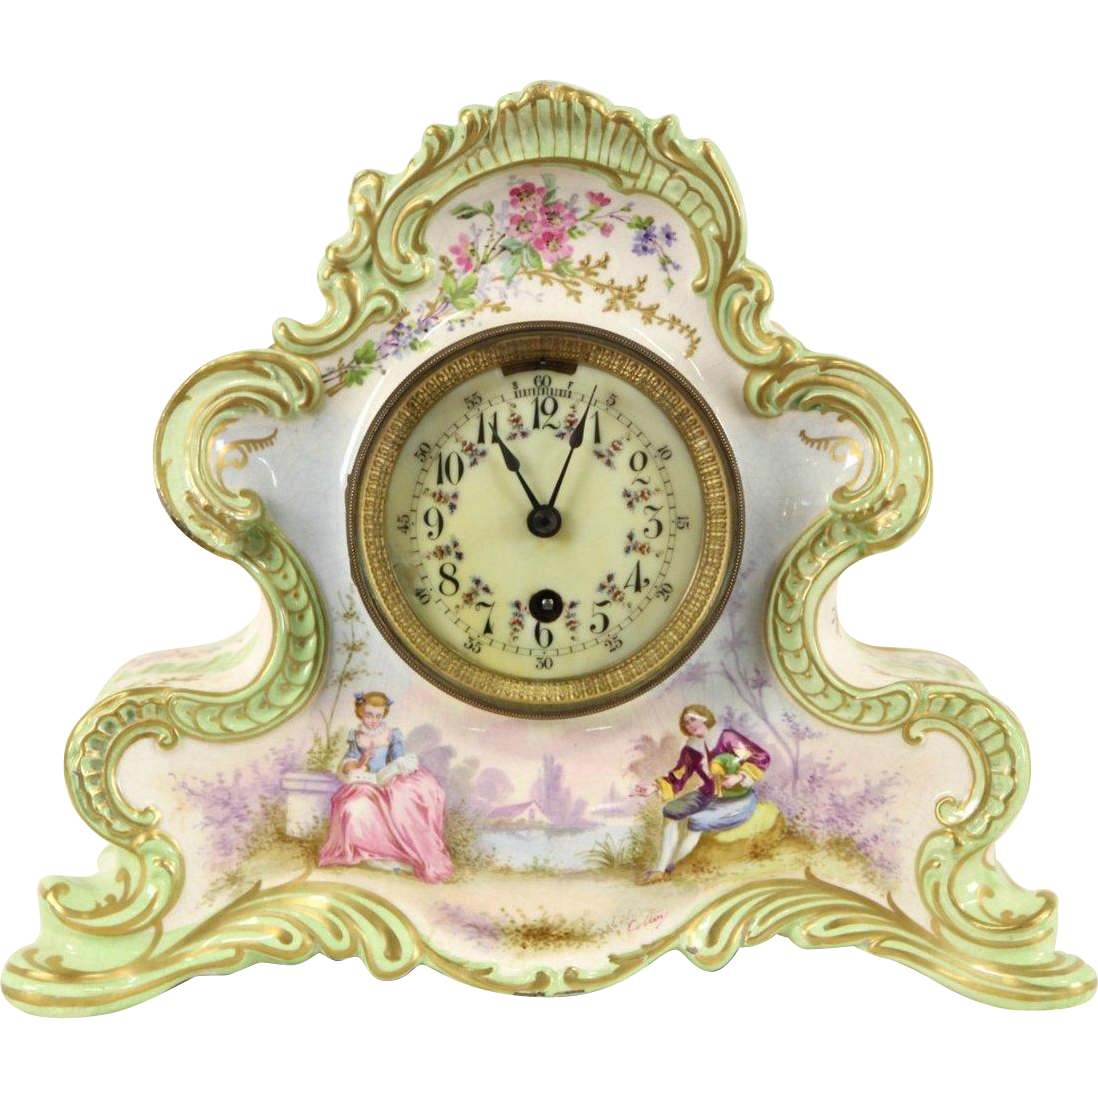 Boston Signed Antique 1880's Victorian Clock, French Porcelain Case